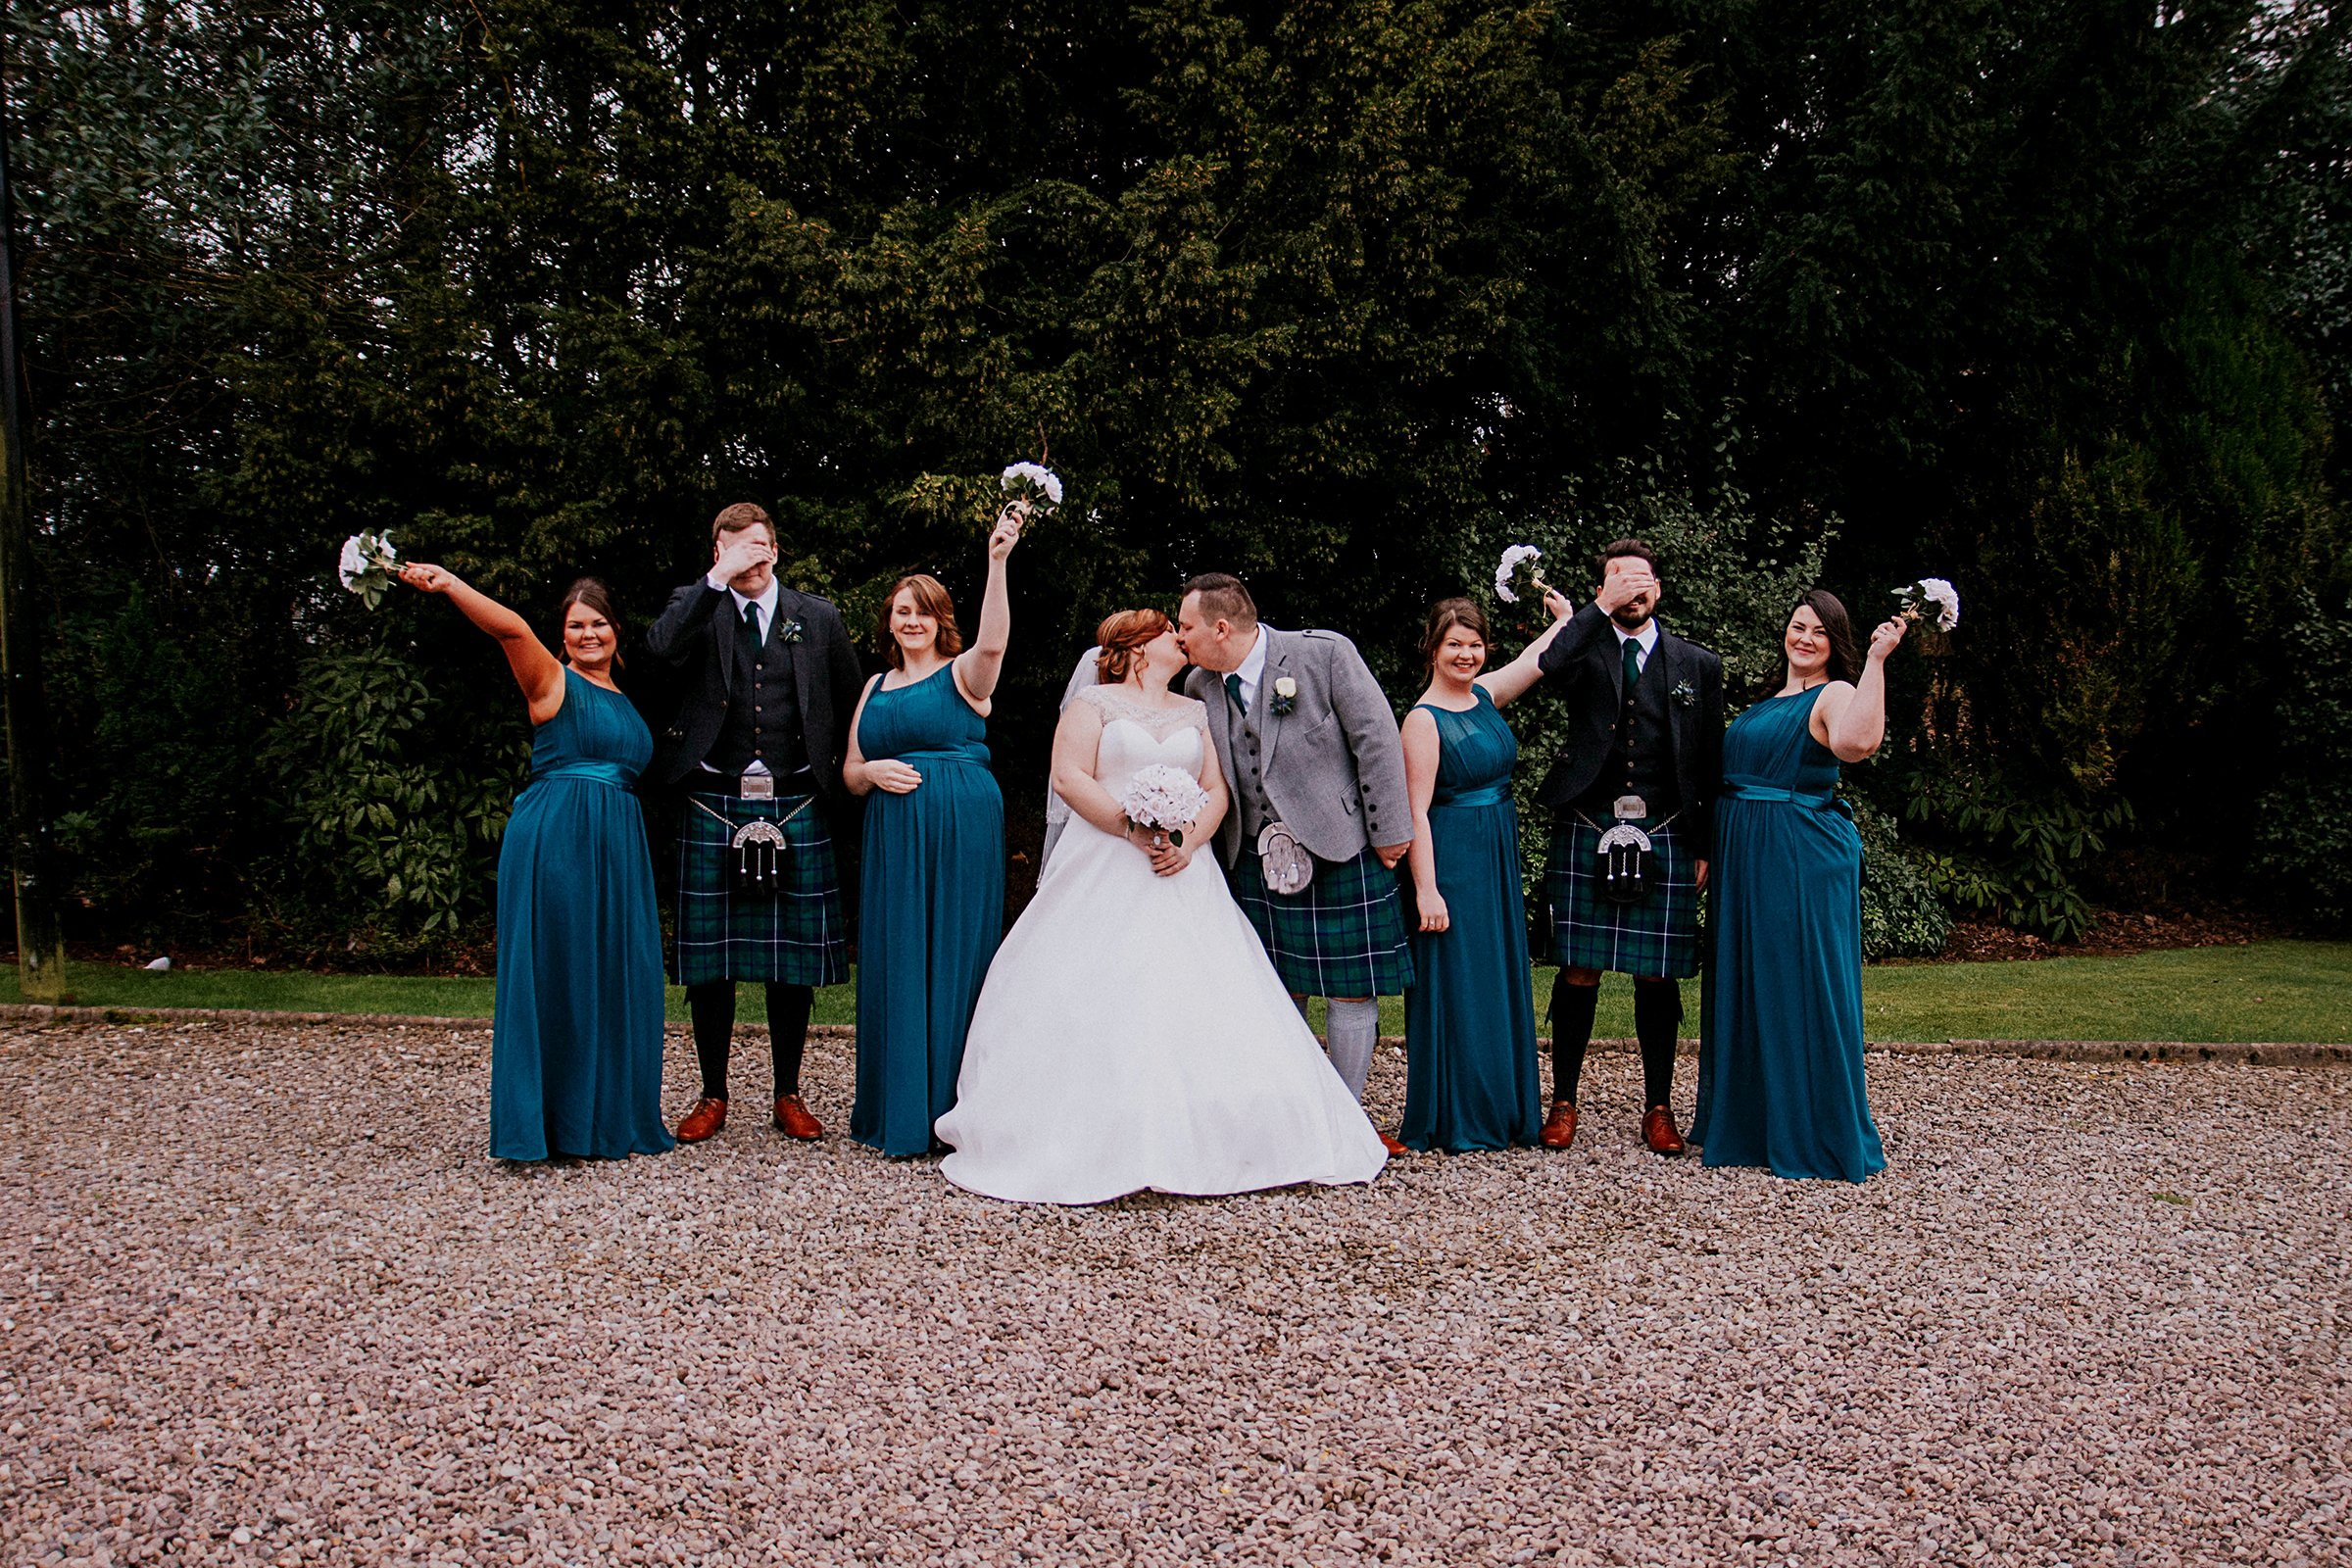 wedding photogapher natural professional affordable photography falkirk